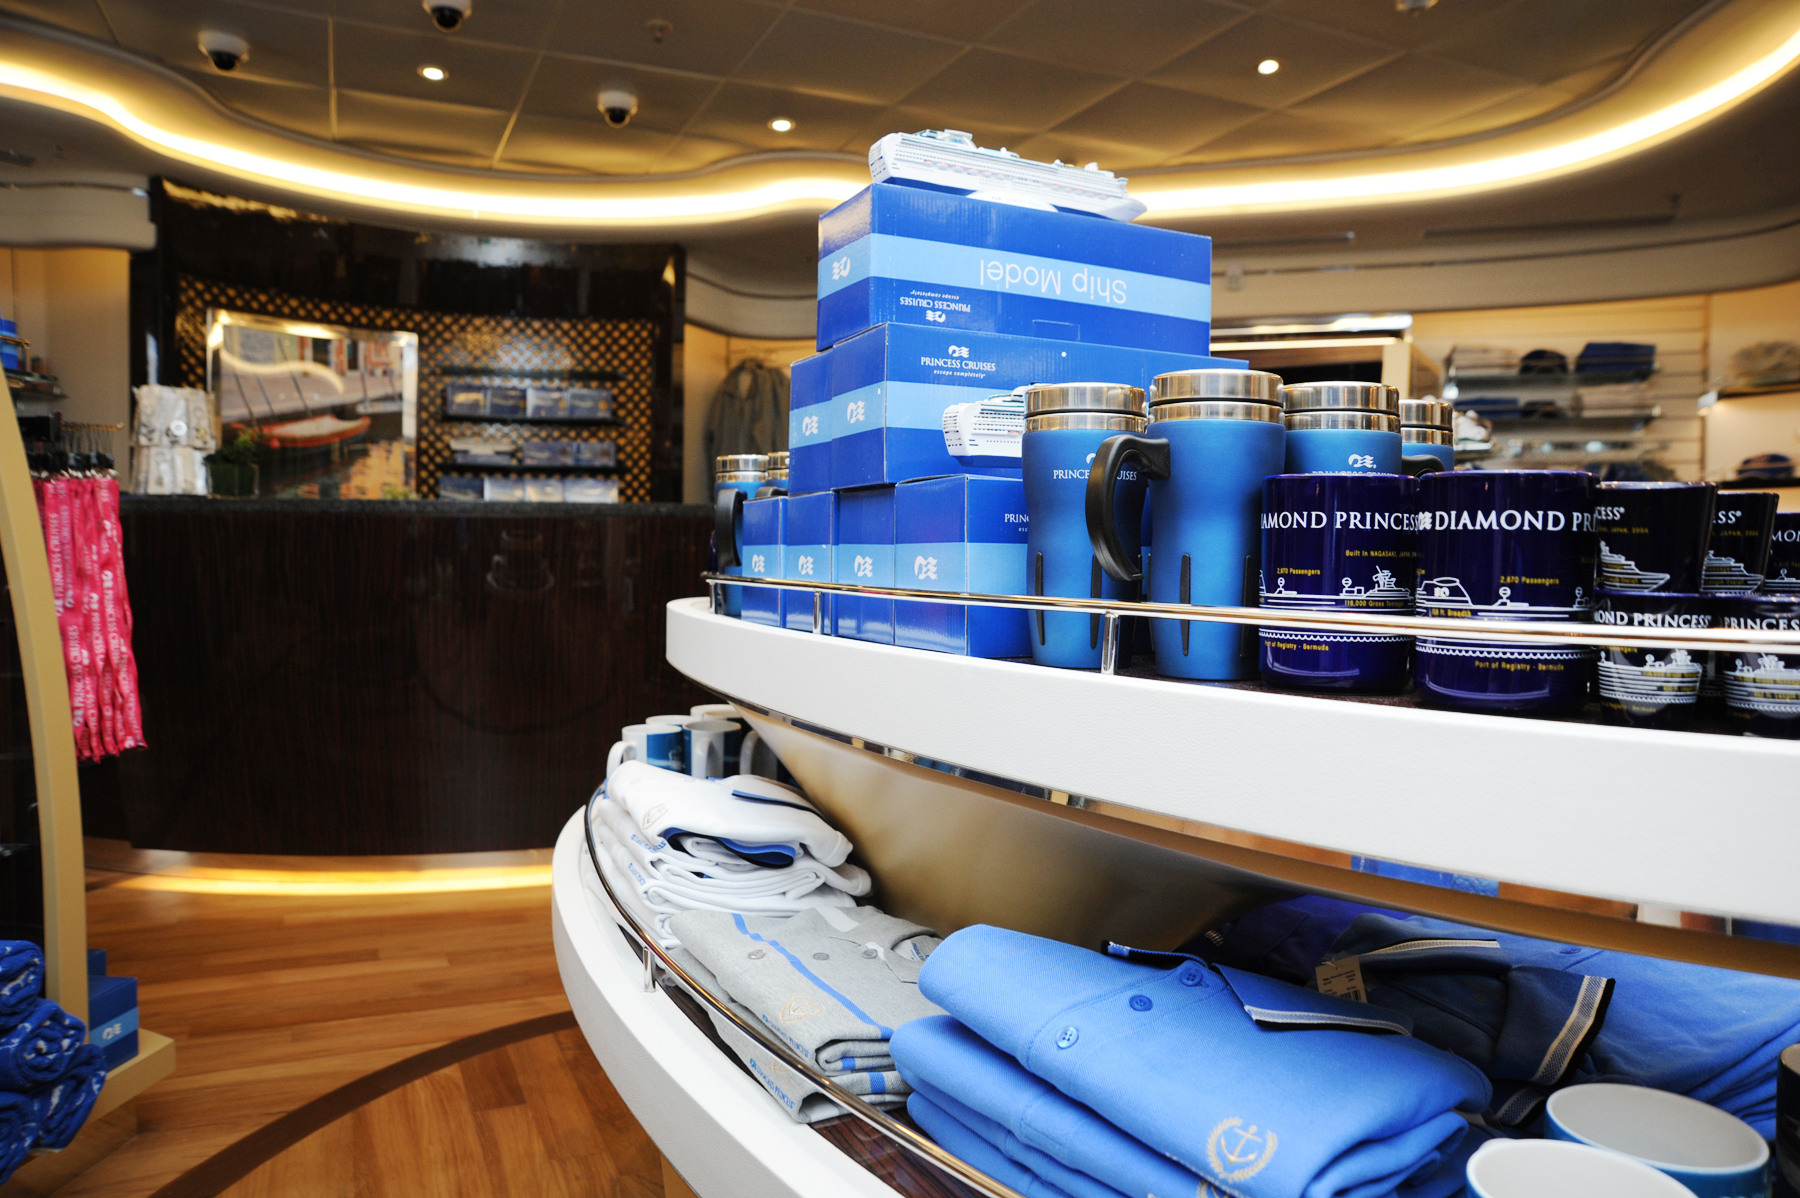 Princess Cruises Coral Class Interior shop 2.jpg